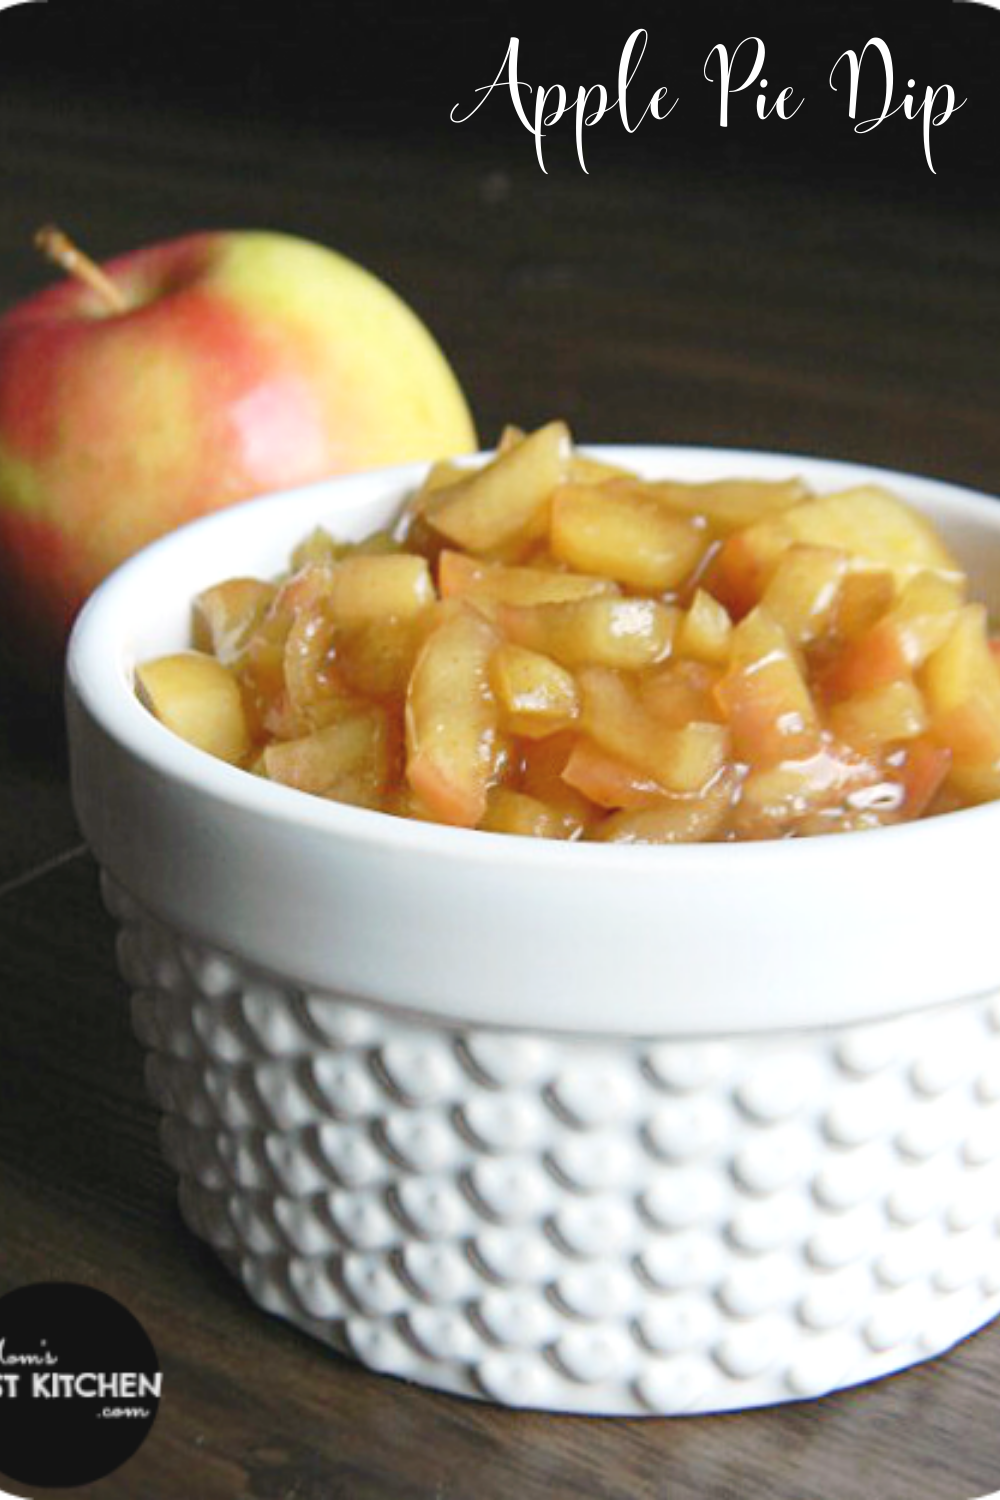 Get all the flavors of apple pie without all of the work! Serve this Apple Pie Dip with your favorite Cinnamon Chips, stuffed in between waffles or as a delicious ice cream topping.